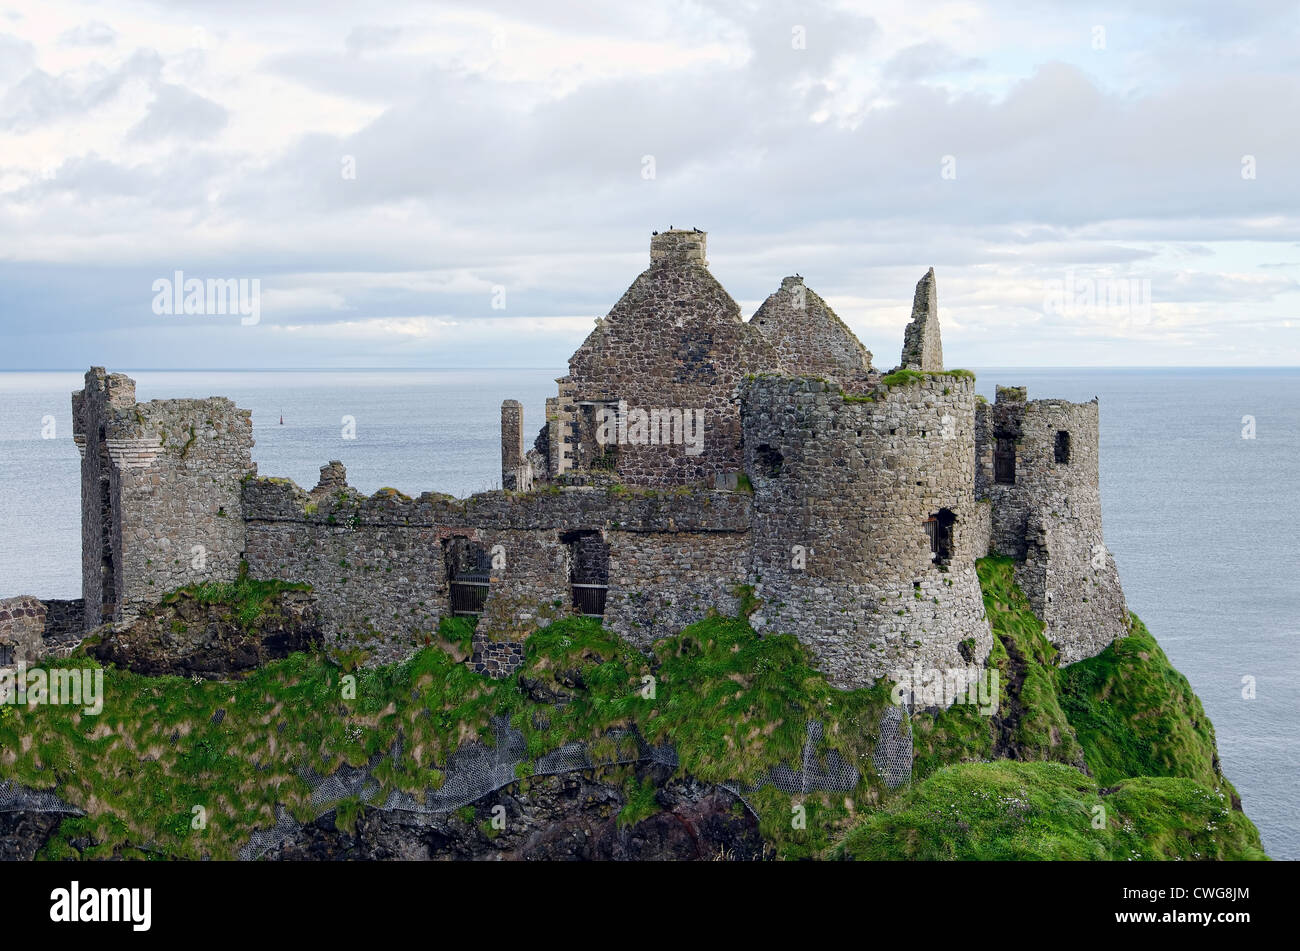 Dunluce Castle, County Antrim in Northern Ireland - Stock Image